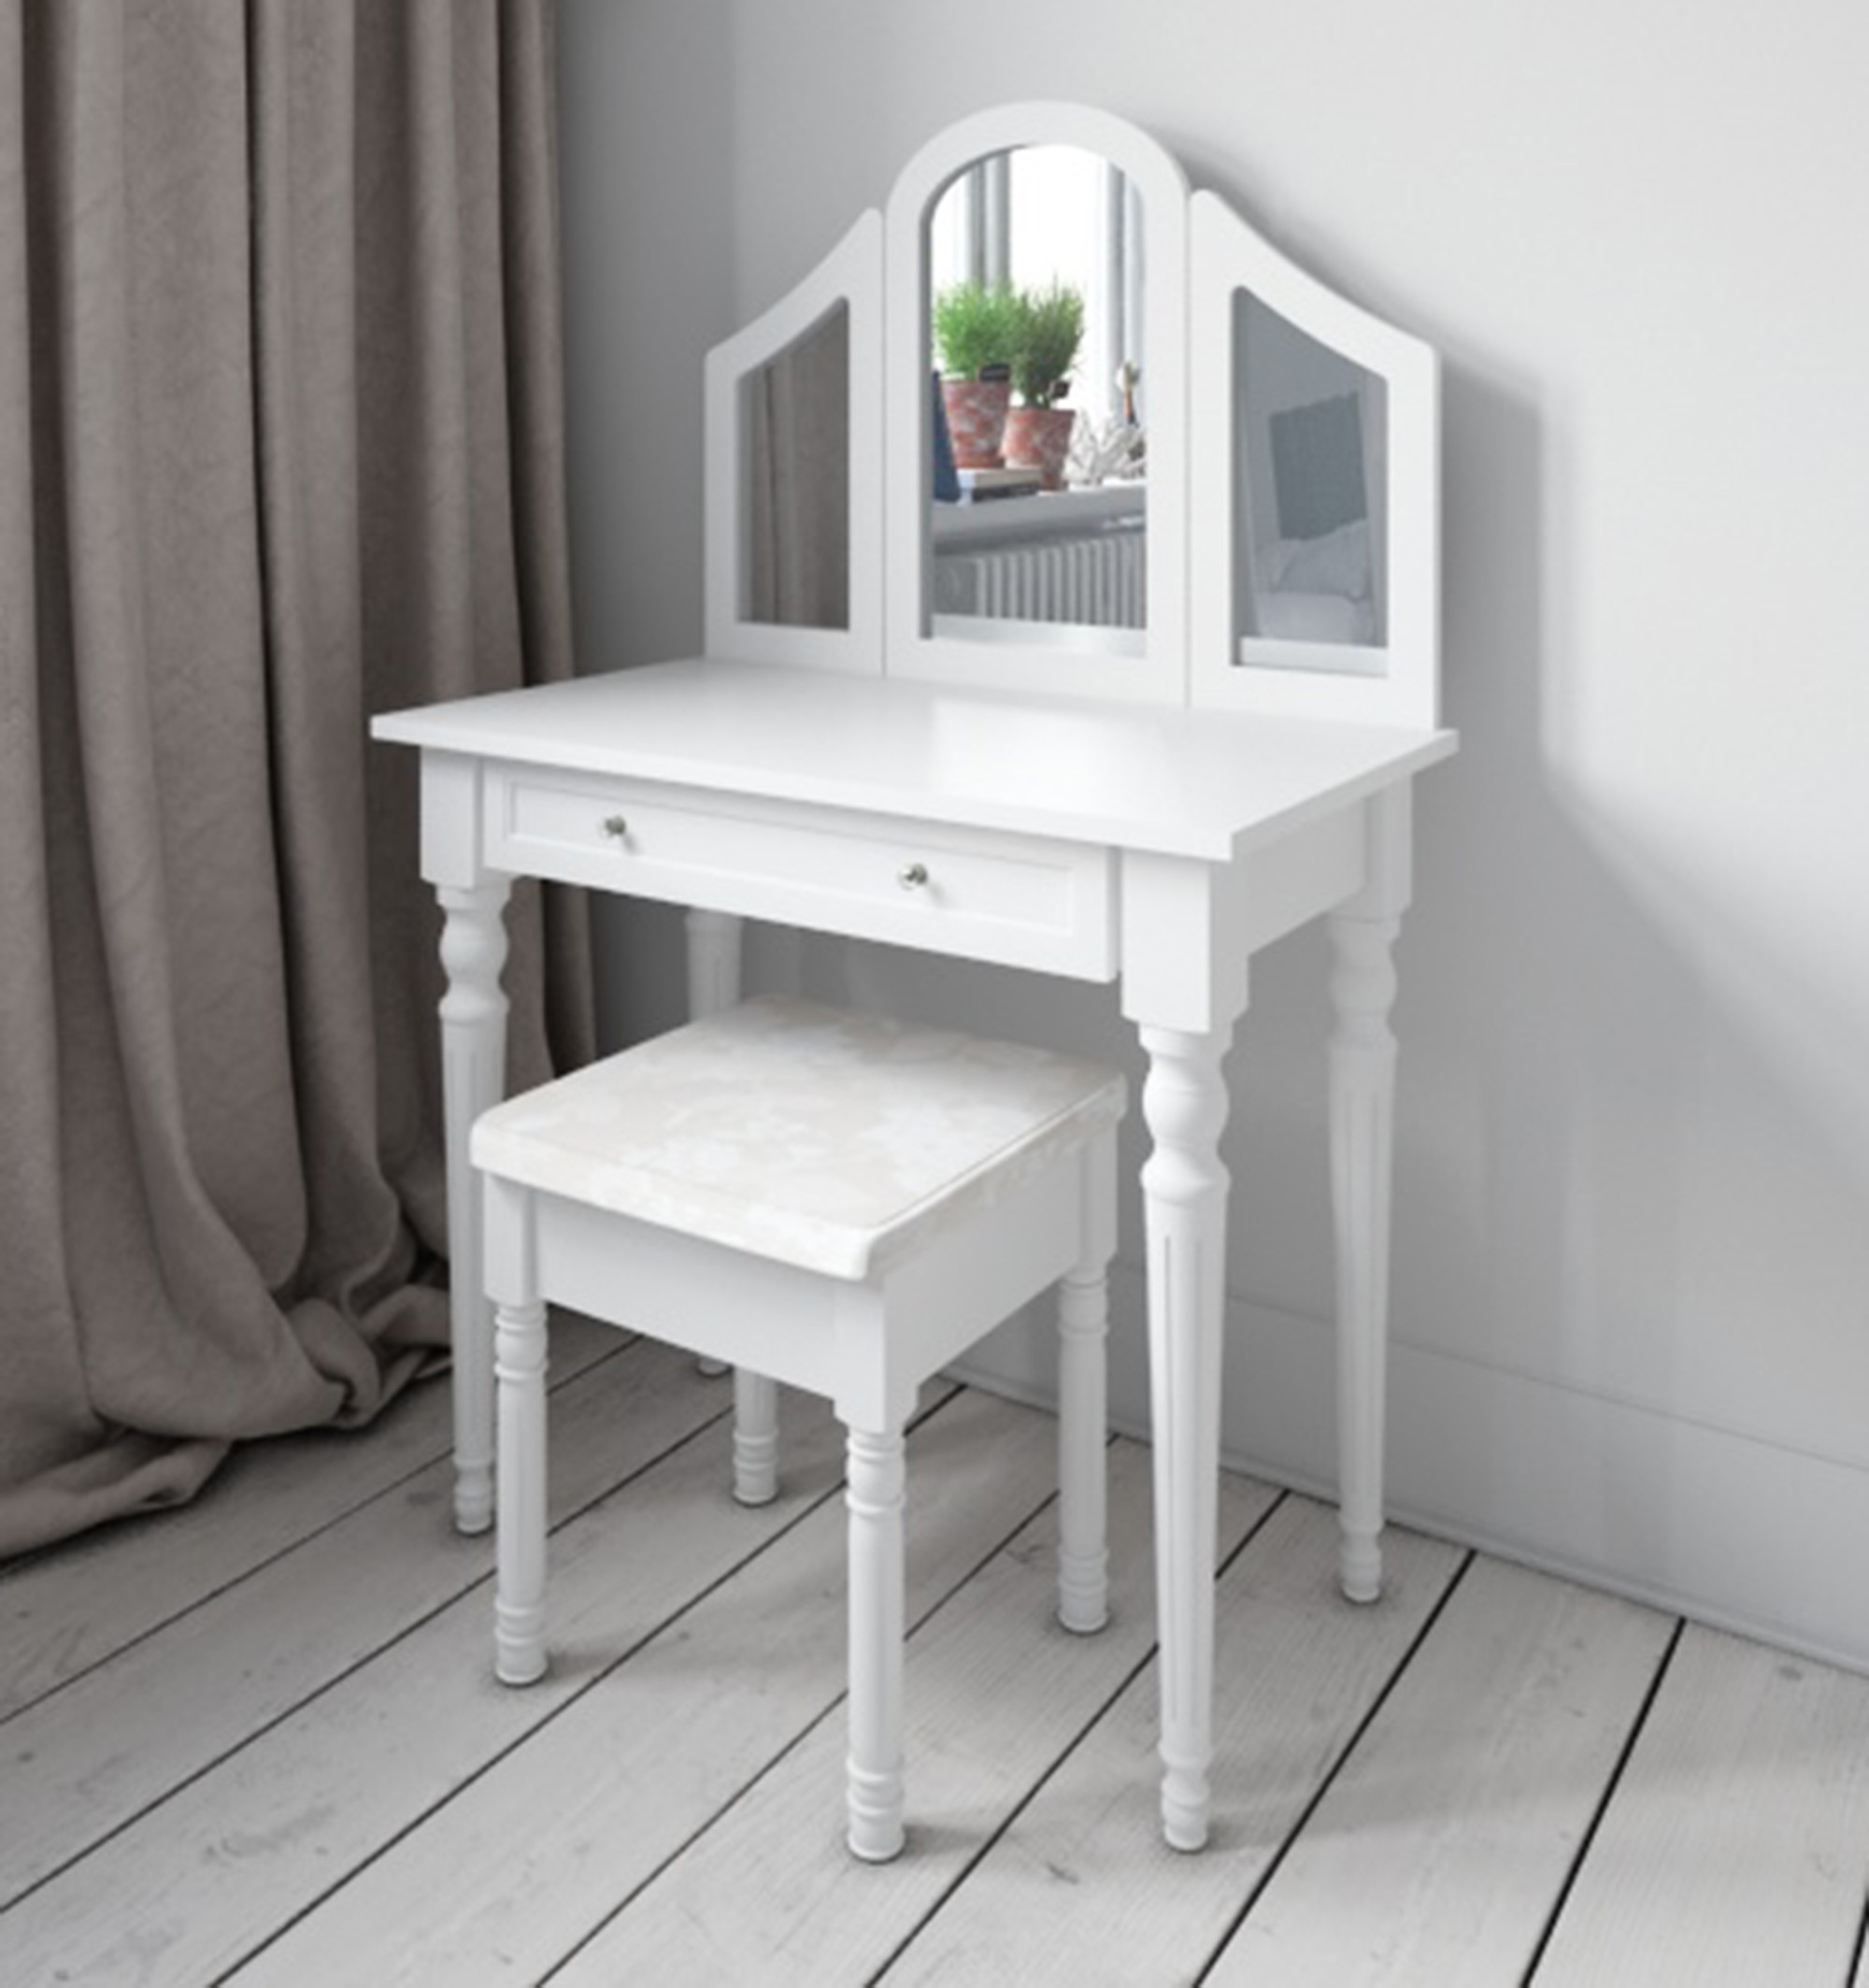 3 Mirrored Dressing Table From Abreo Abreo Home Furniture